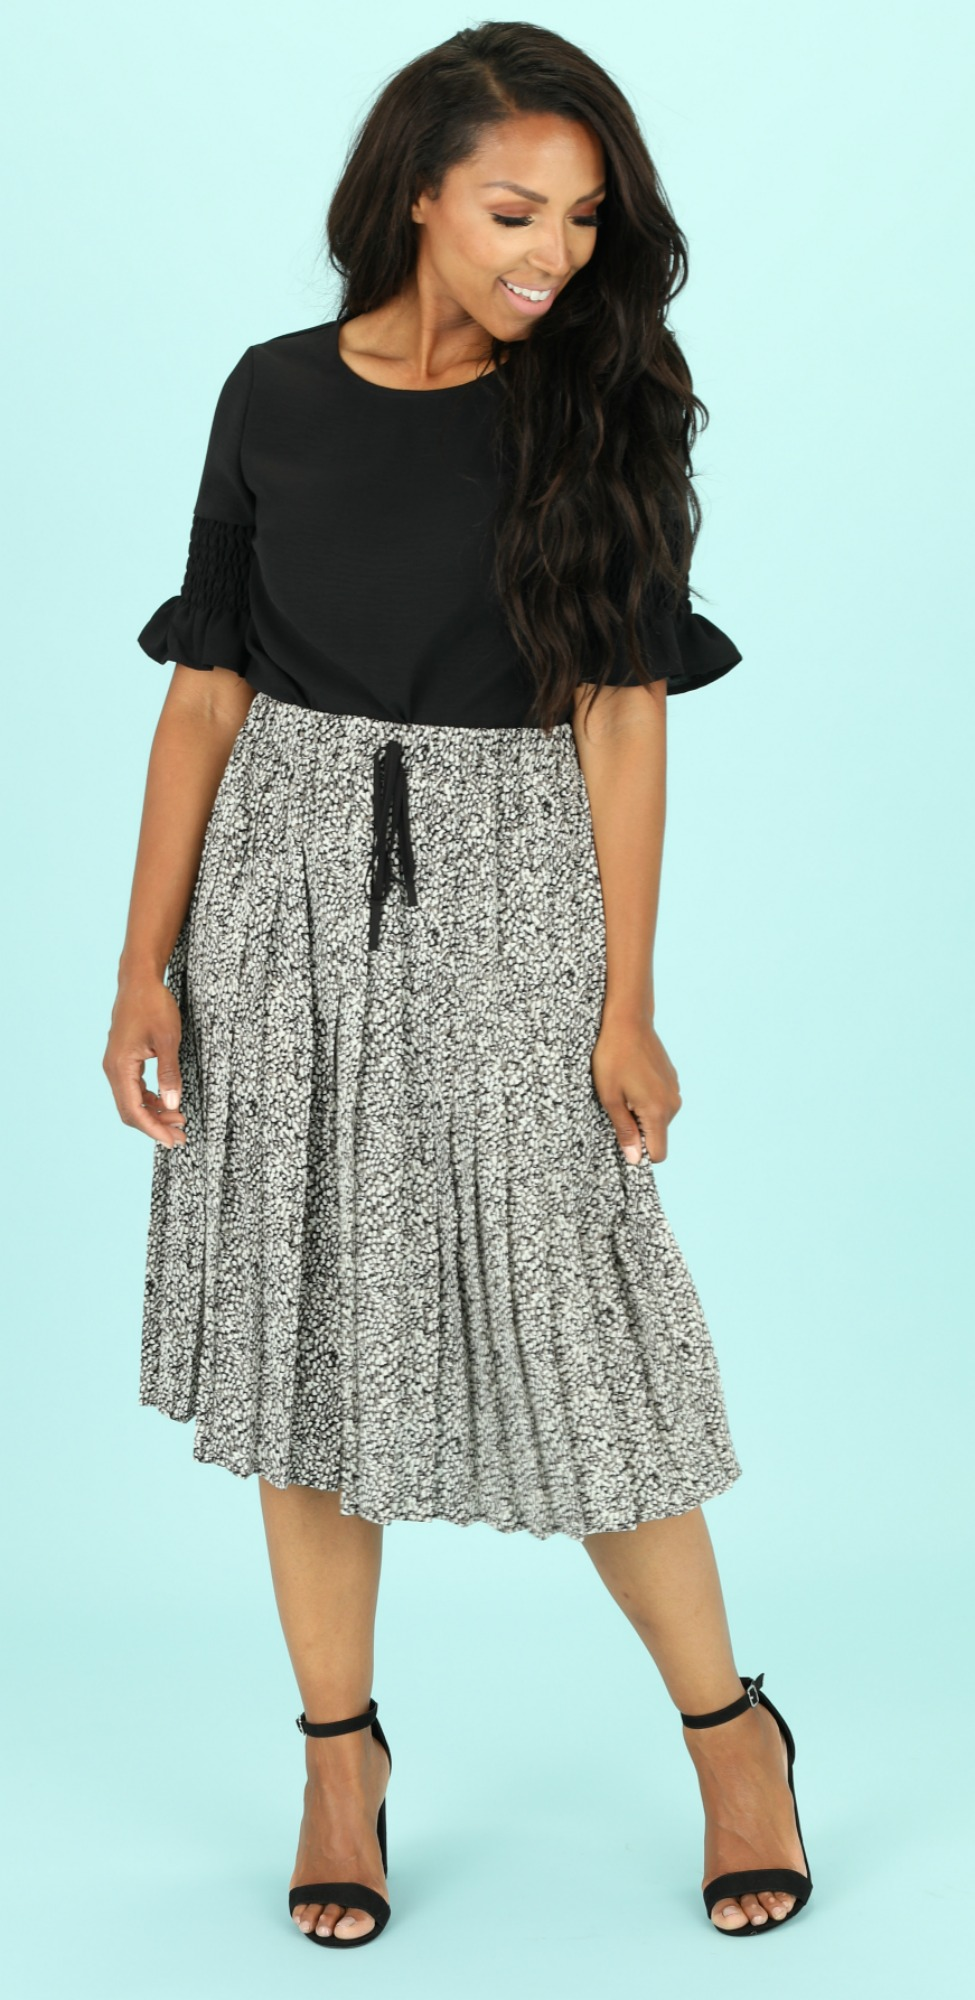 Pleated Skirt-Gray Abstract